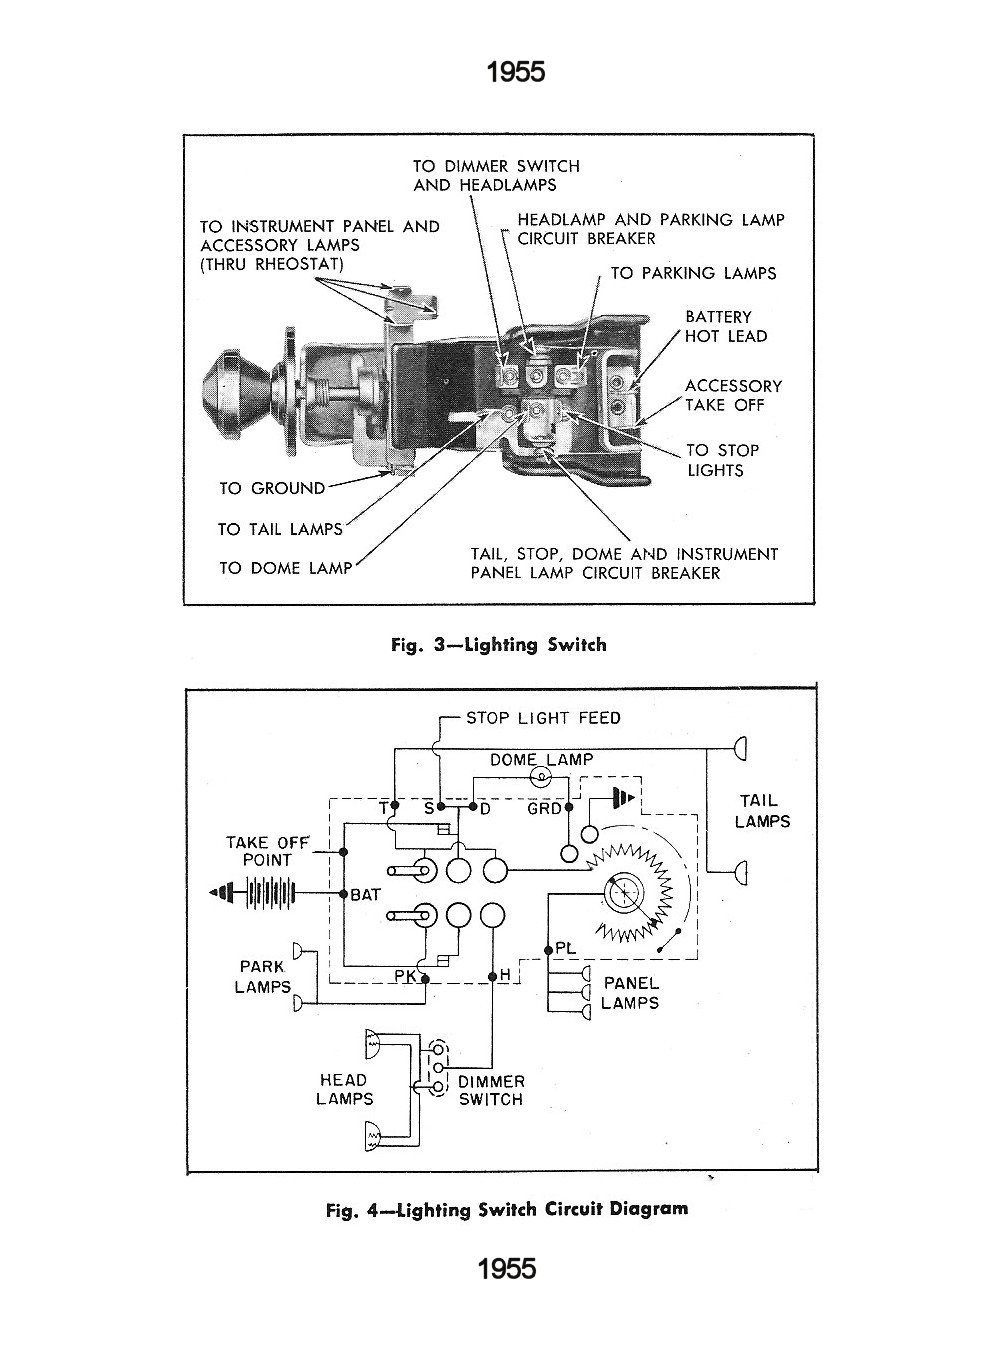 56 Chevy Wiring Book - Wiring Data schematic on 1974 corvette wiring diagram, chevy alternator wiring diagram, 1967 c10 chassis, 1967 c10 brake system, 1967 c10 door, chevy tail light wiring diagram, 1967 c10 rear suspension, 1967 c10 engine, 1967 c10 frame, 1967 c10 parts, 87 corvette wiring diagram, 1967 c10 exhaust, 1967 c10 headlights, 1967 c10 radiator, 1967 c10 battery, chevy truck wiring diagram, 63 corvette wiring diagram, 82 corvette wiring diagram, 1967 c10 air conditioning, 1967 c10 wheels,